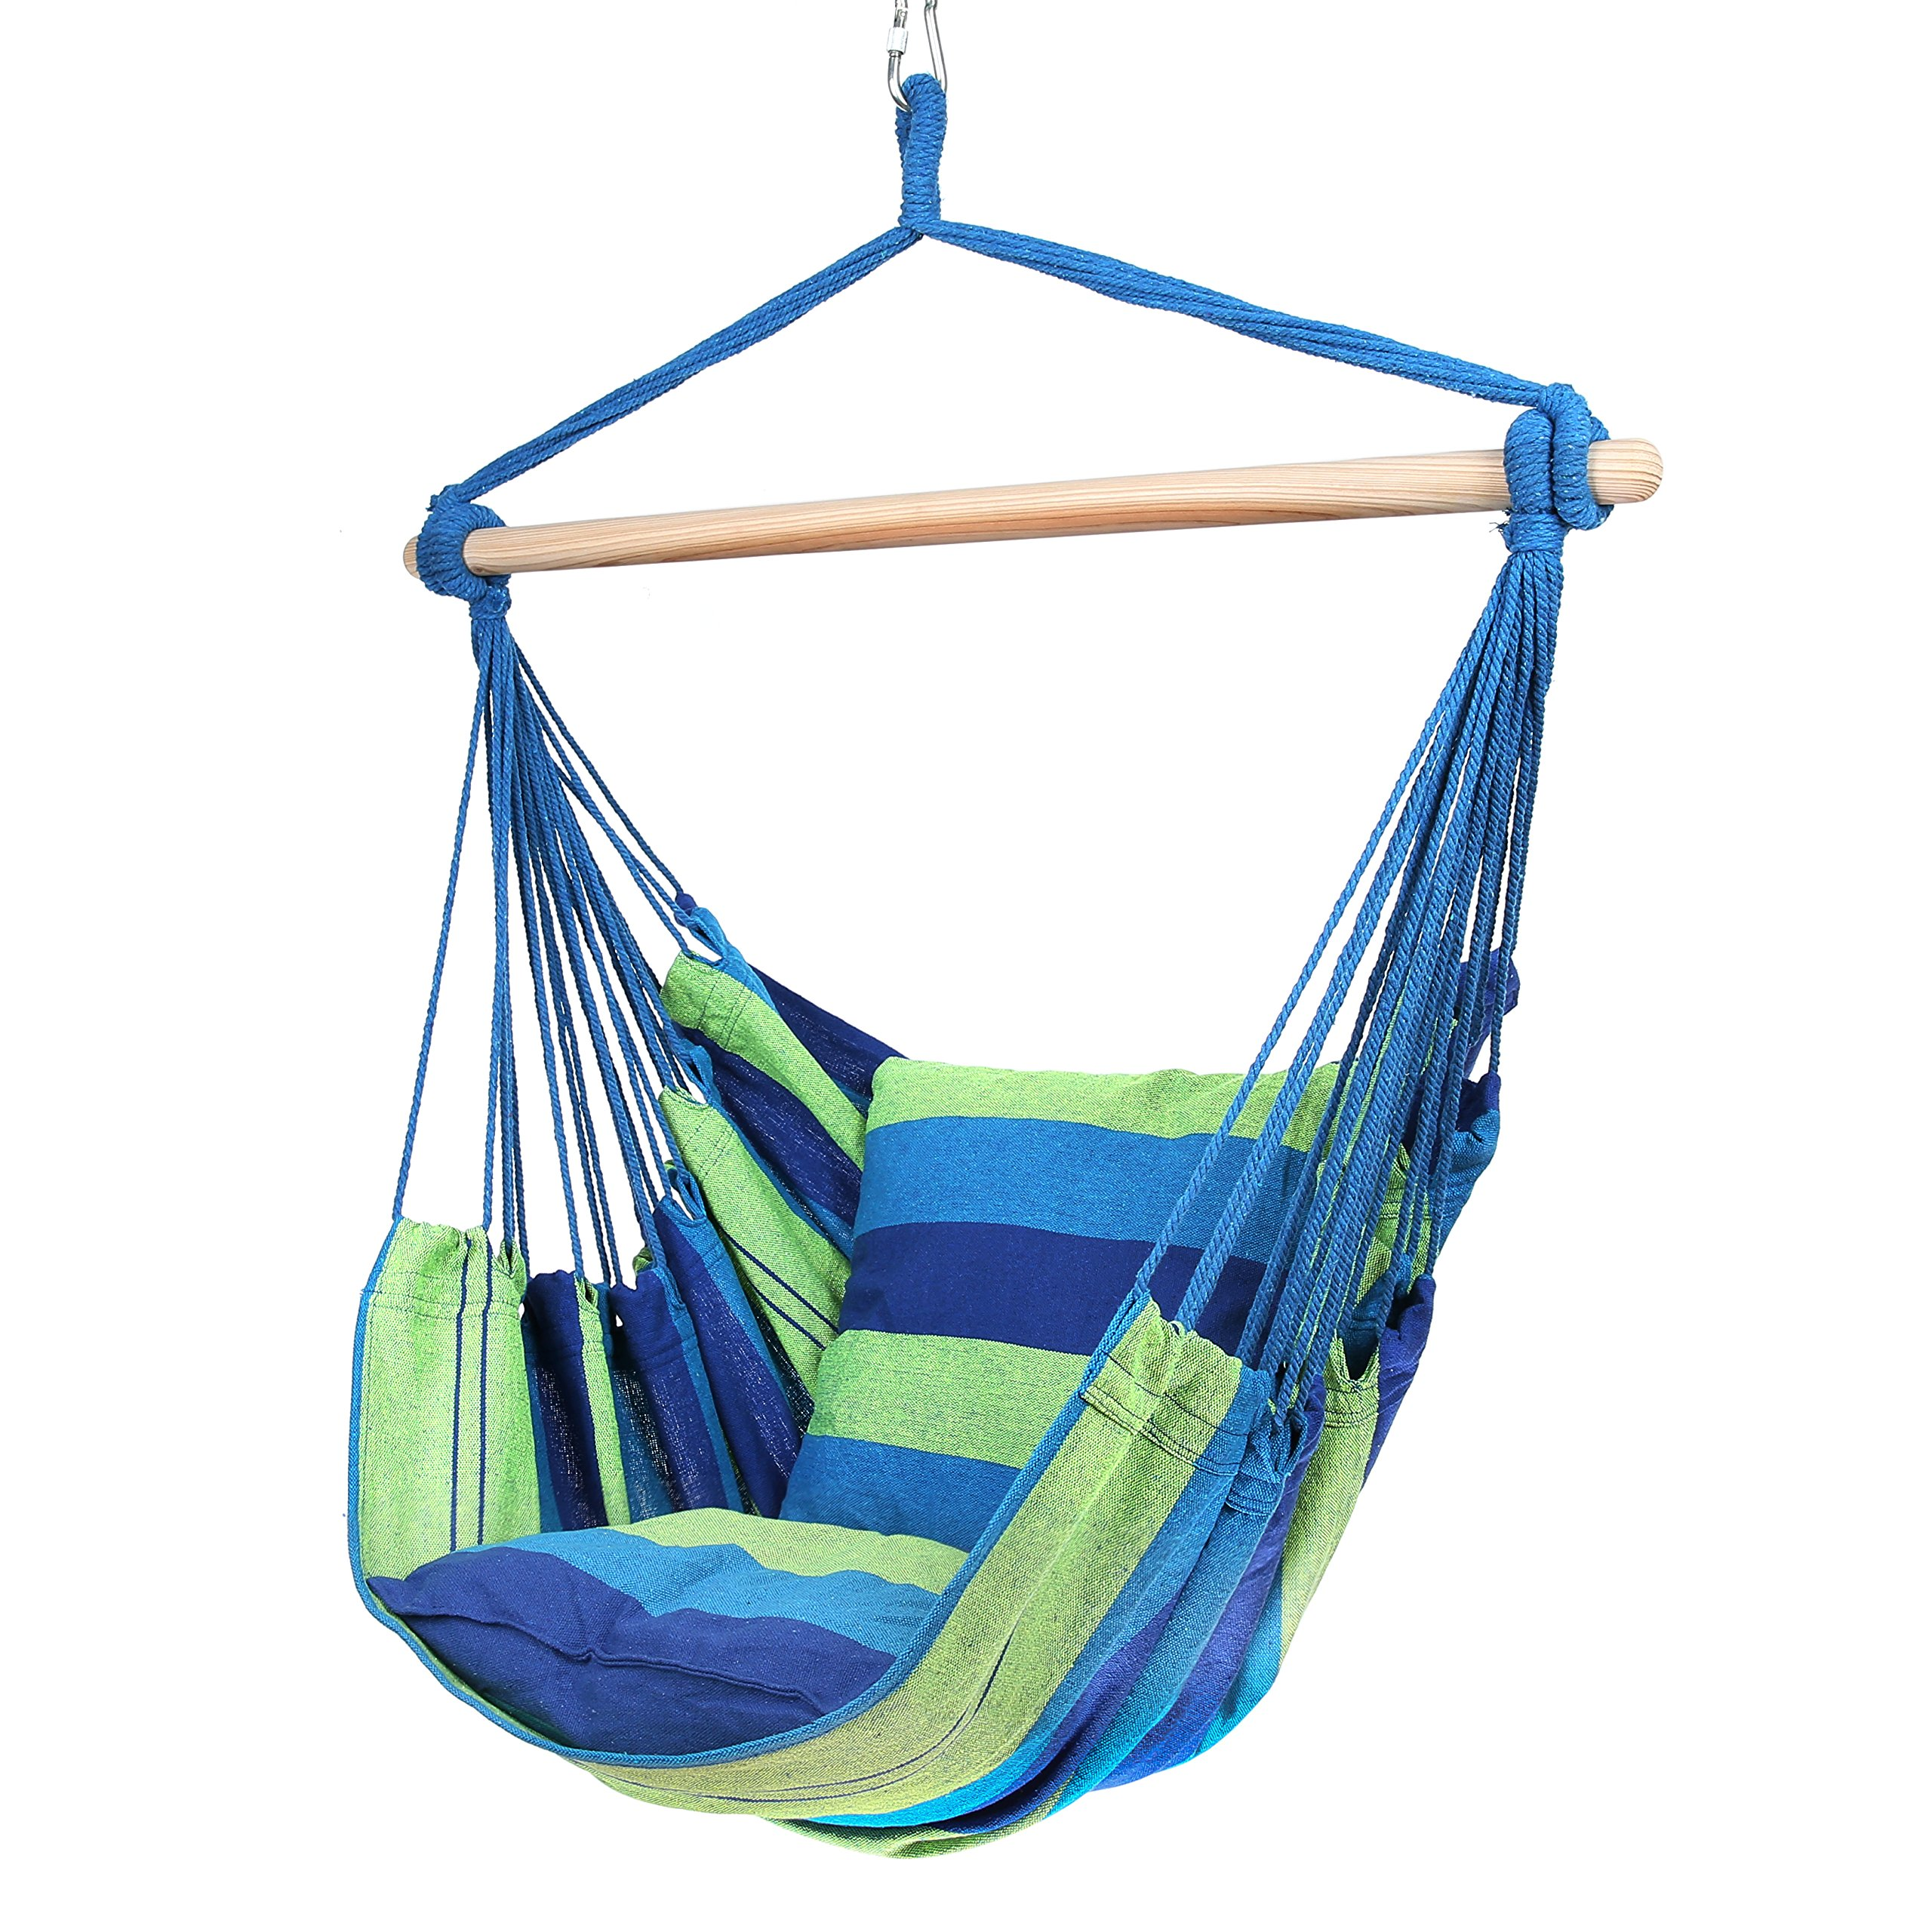 Blissun Hammock Chair, Hanging Chair, Swing Chair (Blue & Green Stripes)